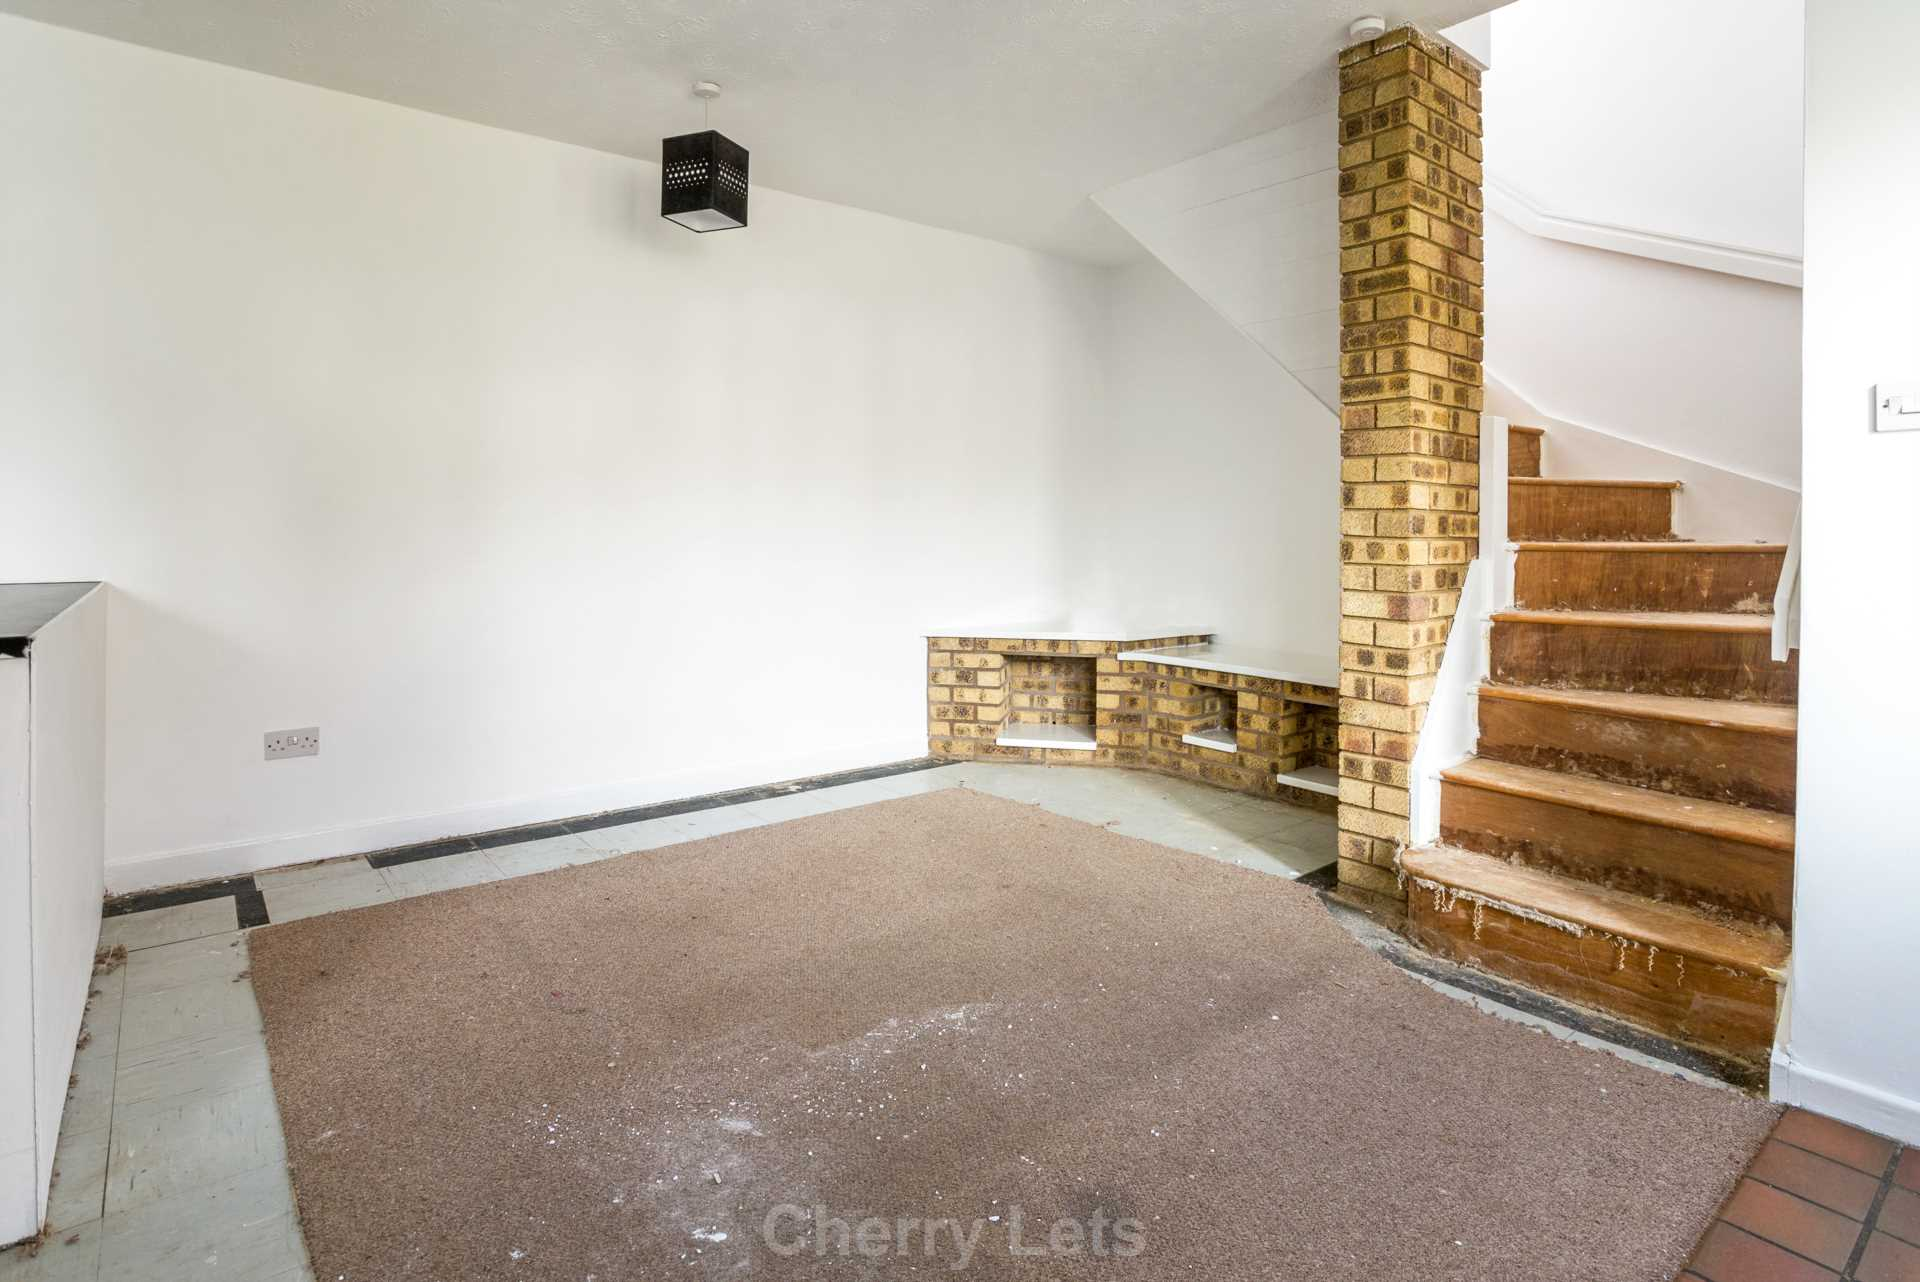 1 bed end of terrace house to rent in Bedford Close, Banbury, OX16 5